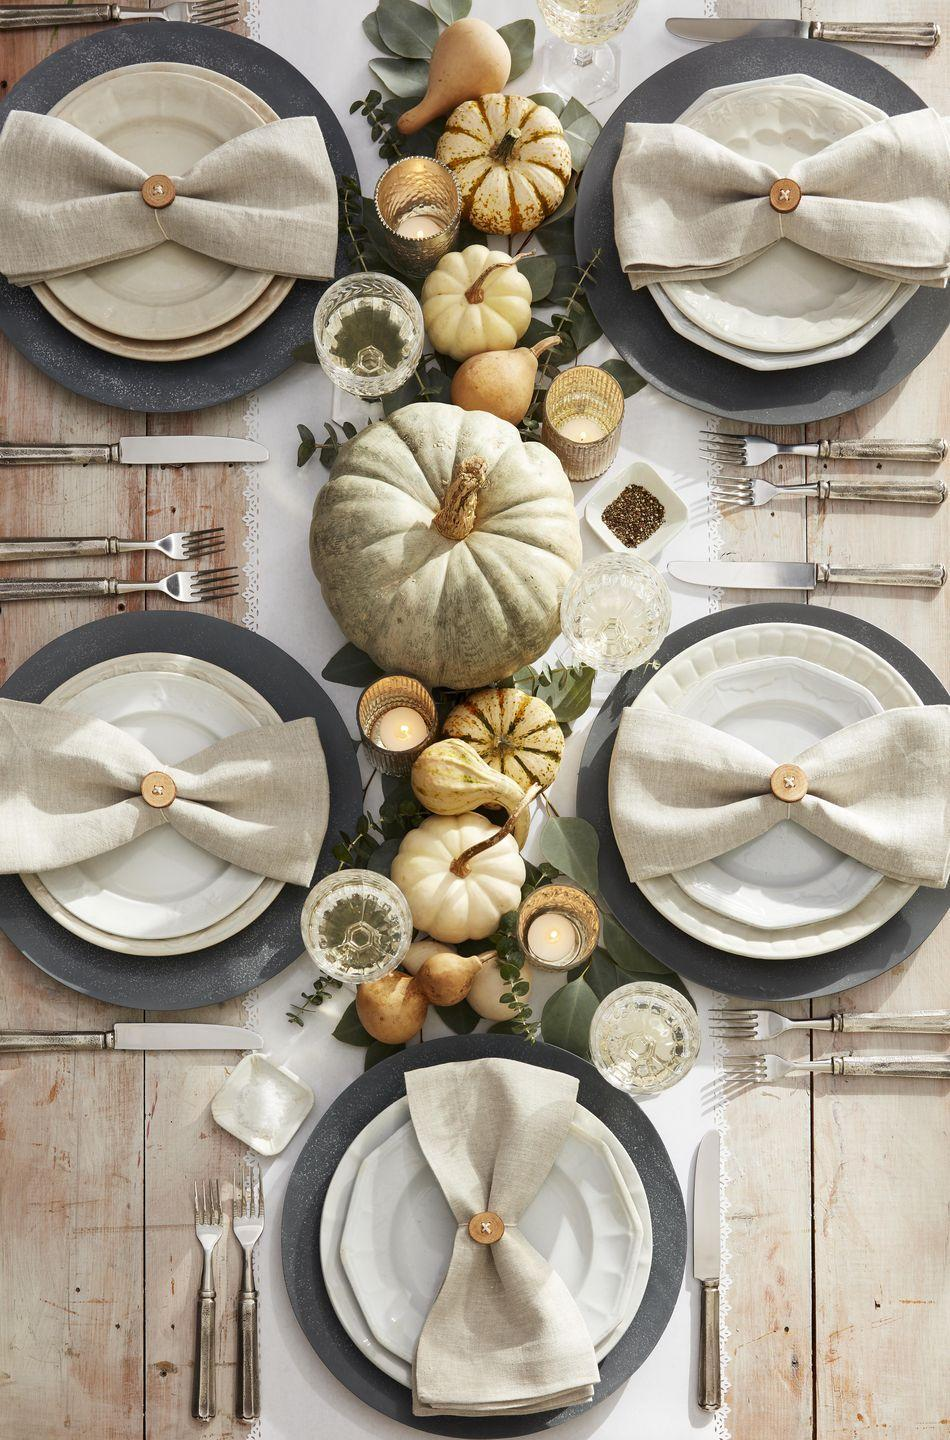 "<p>For a neutral yet bountiful tablescape simply line the center of the table with eucalyptus branches, neutral pumpkins and gourds, and painted pumpkins (see next slide). For a warm touch but votive candles in sparkly gold glass holders.<br><br><a class=""link rapid-noclick-resp"" href=""https://www.amazon.com/Just-Artifacts-Speckled-Mercury-Tealight/dp/B01D1ZCPIA/ref=sr_1_3_sspa?tag=syn-yahoo-20&ascsubtag=%5Bartid%7C10050.g.2063%5Bsrc%7Cyahoo-us"" rel=""nofollow noopener"" target=""_blank"" data-ylk=""slk:SHOP GOLD VOTIVE HOLDERS"">SHOP GOLD VOTIVE HOLDERS</a></p>"